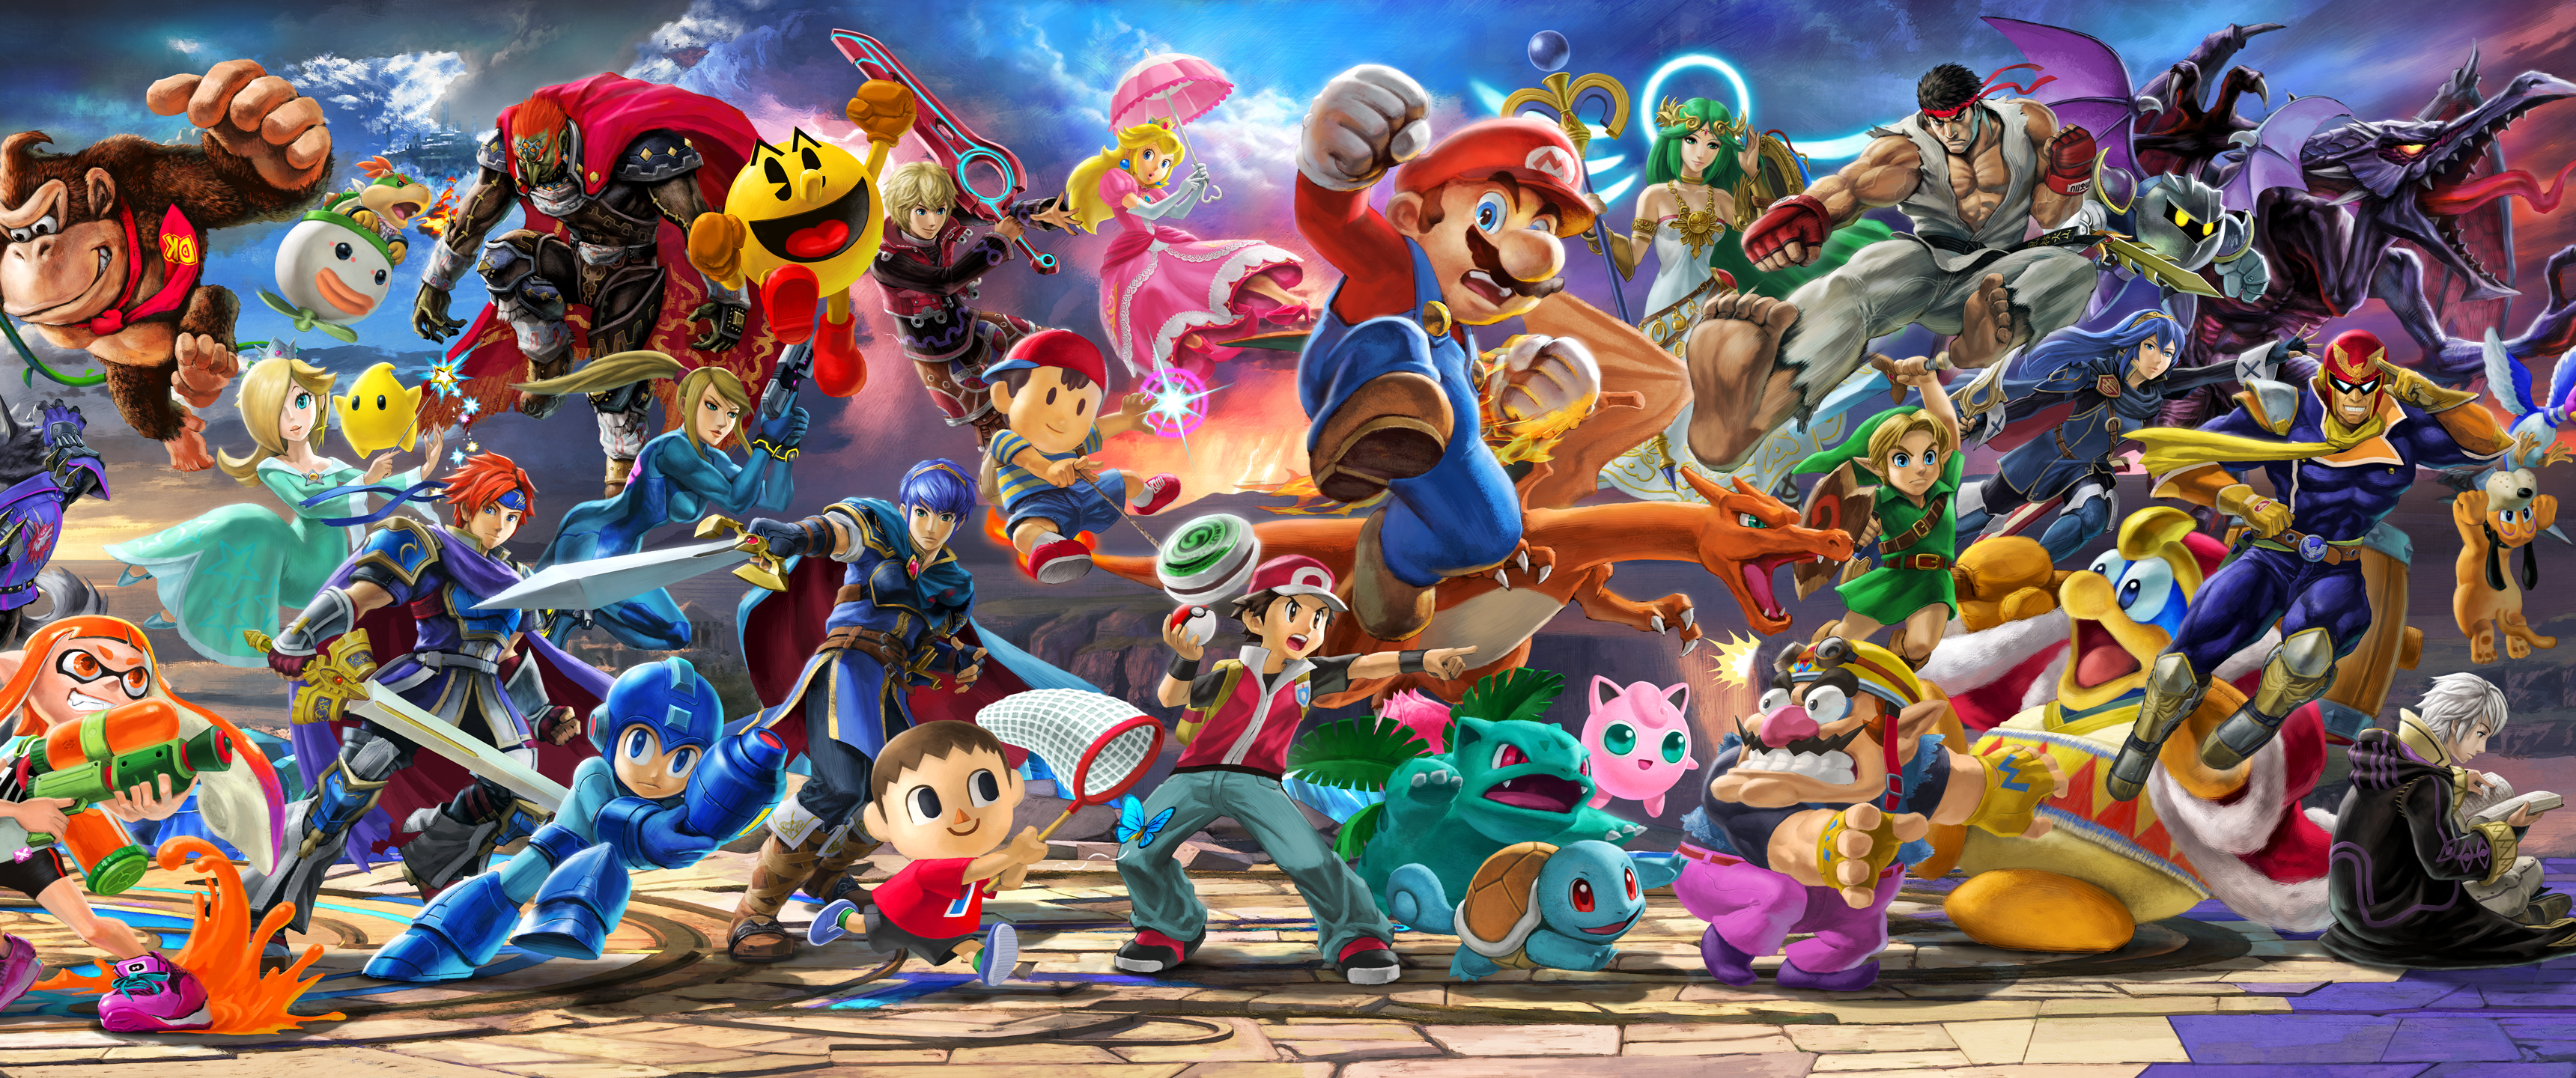 45 Smash Bros Ultimate Wallpapers On Wallpapersafari